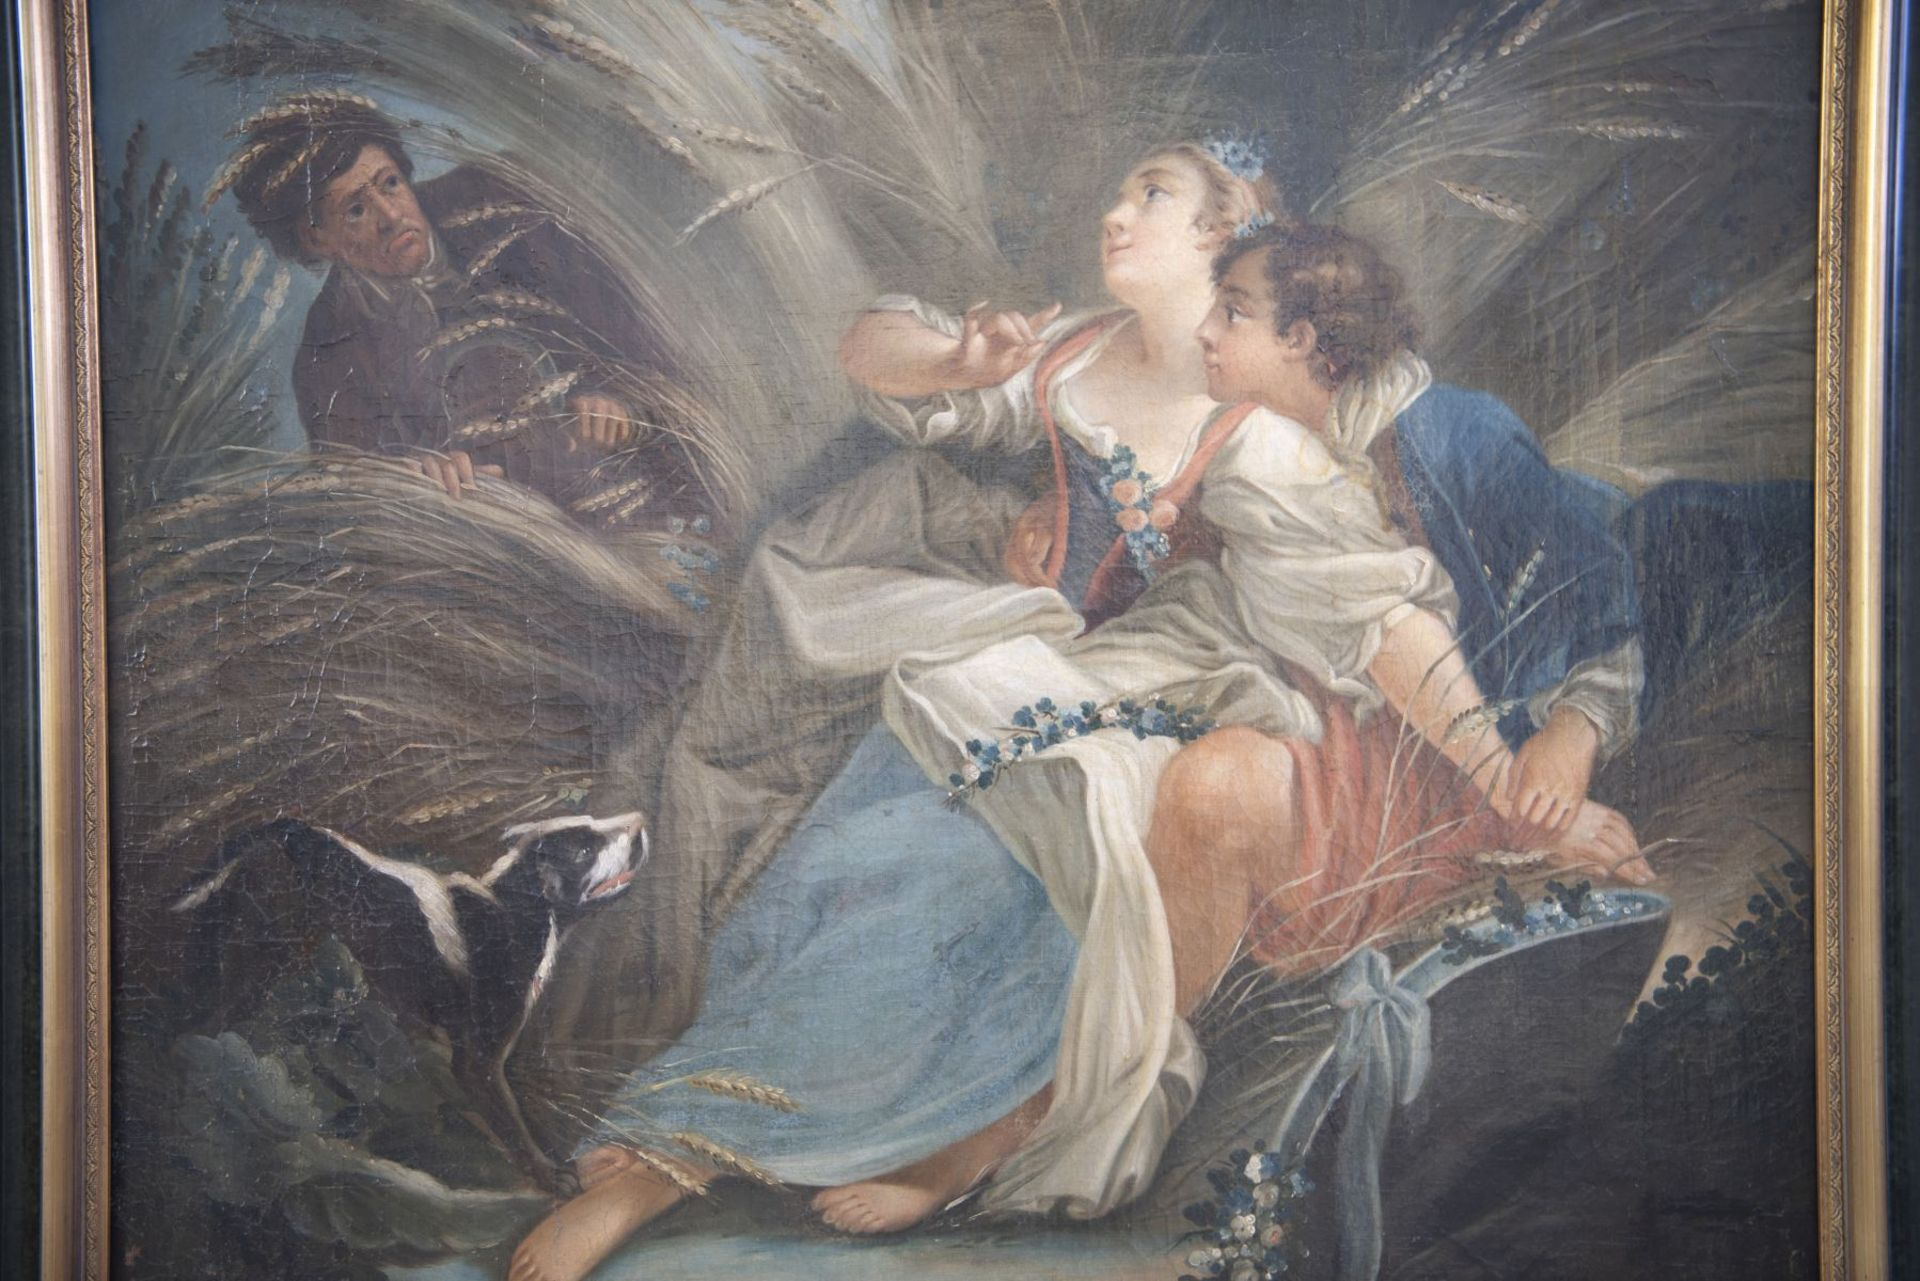 """France 18th century """"Caught lovers"""" - Image 3 of 7"""